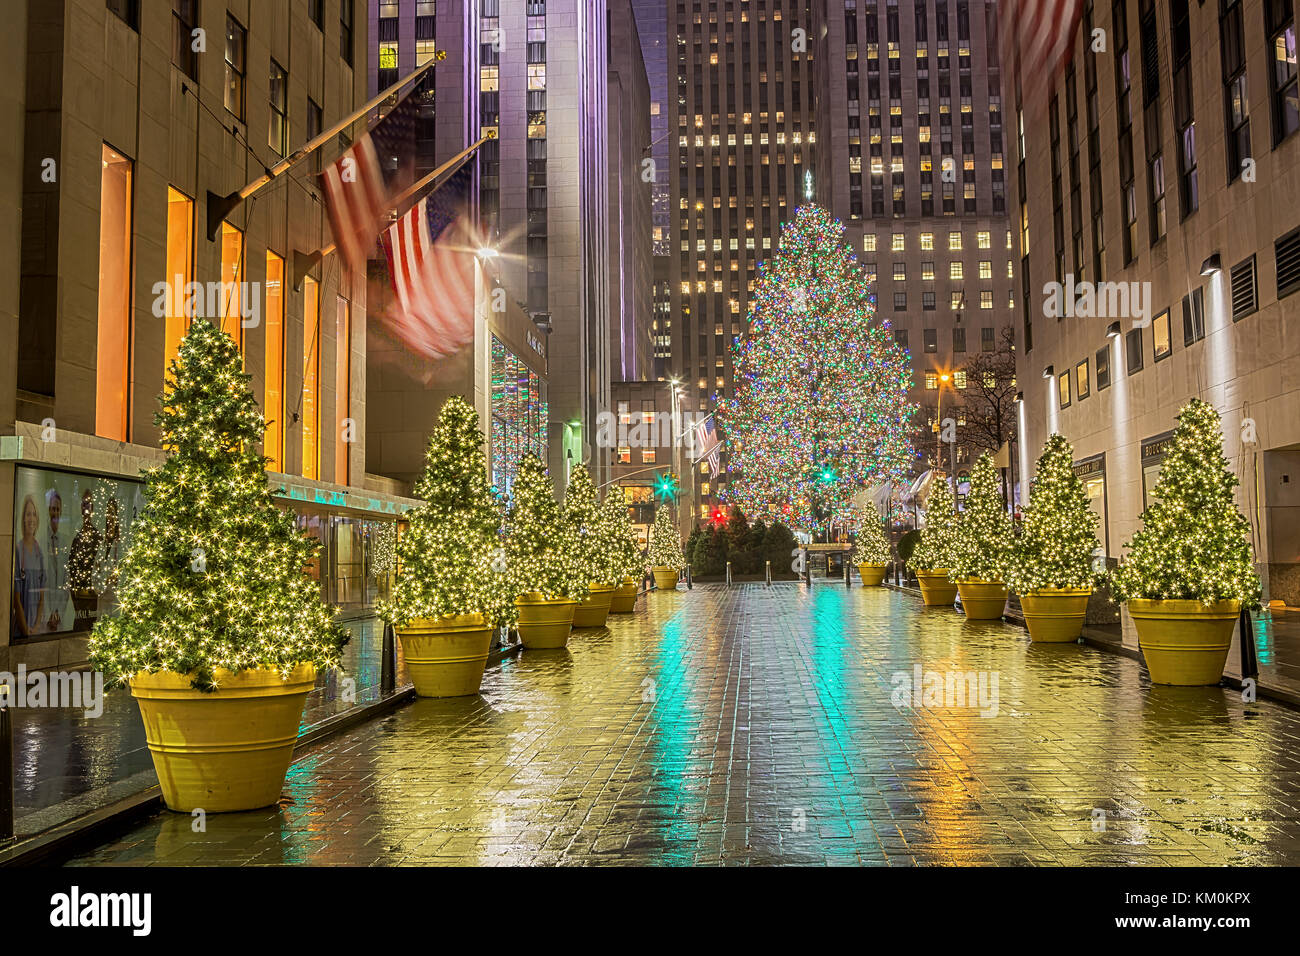 Albero Di Natale New York 2019.Albero Di Natale Al Rockefeller Center Di Manhattan New York City